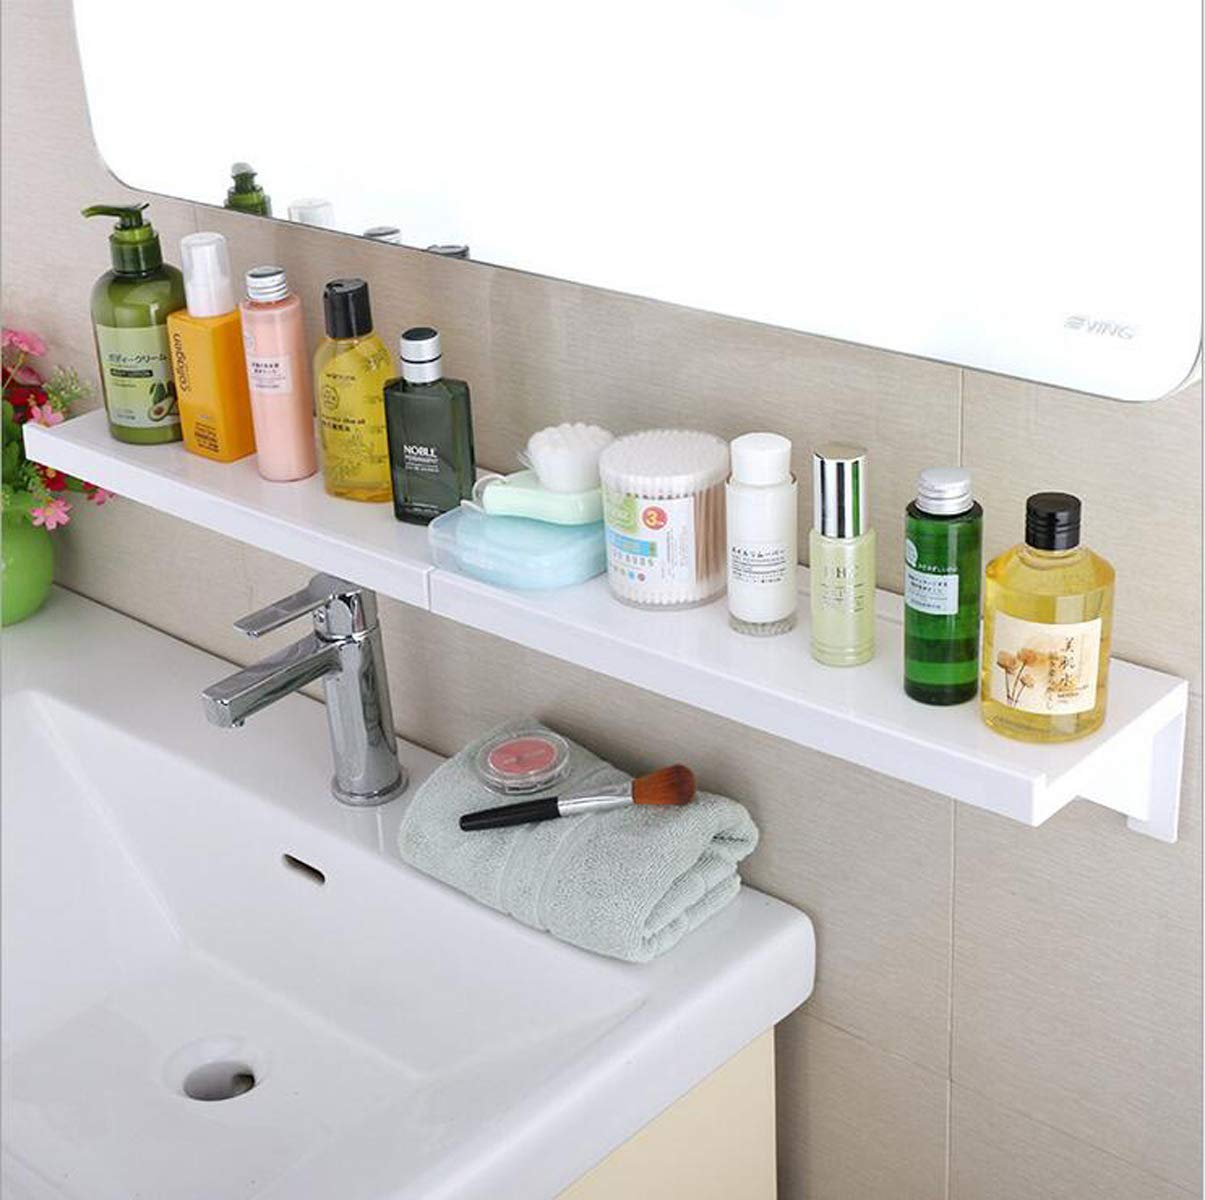 GIGRIN Shower Caddy Organizer Wall Mount, White Easy to Install Bathroom Storage Shelf, Stick for Long Self Adhesive Plastic Bathroom Caddy for Shampoos, Body Washes, Facial Cleansers and More